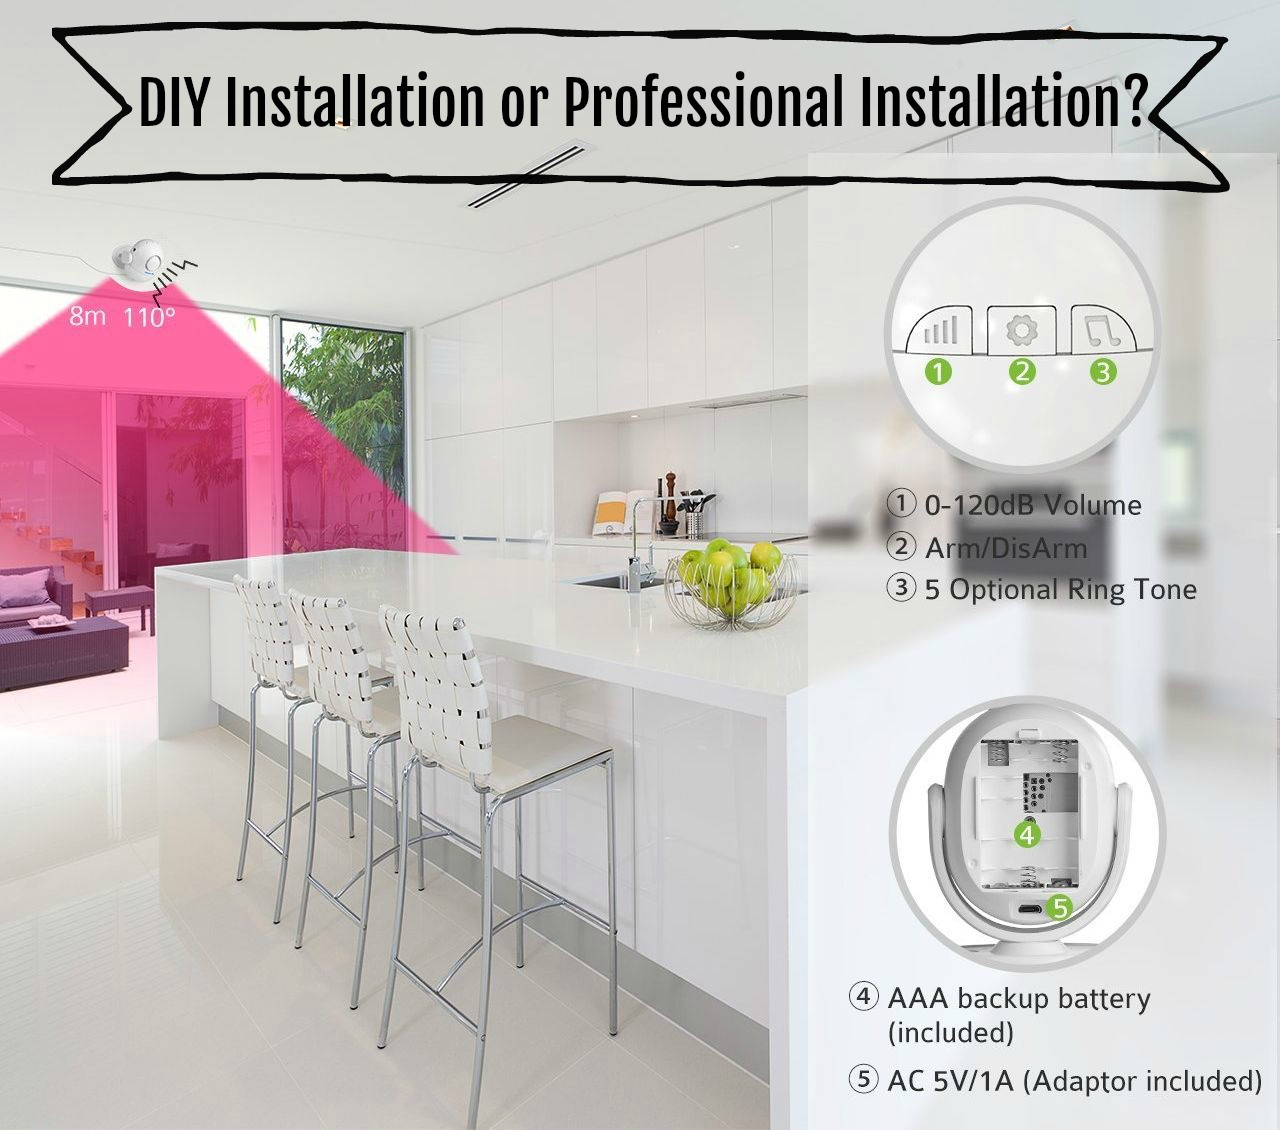 DIY Installation or Professional Installation